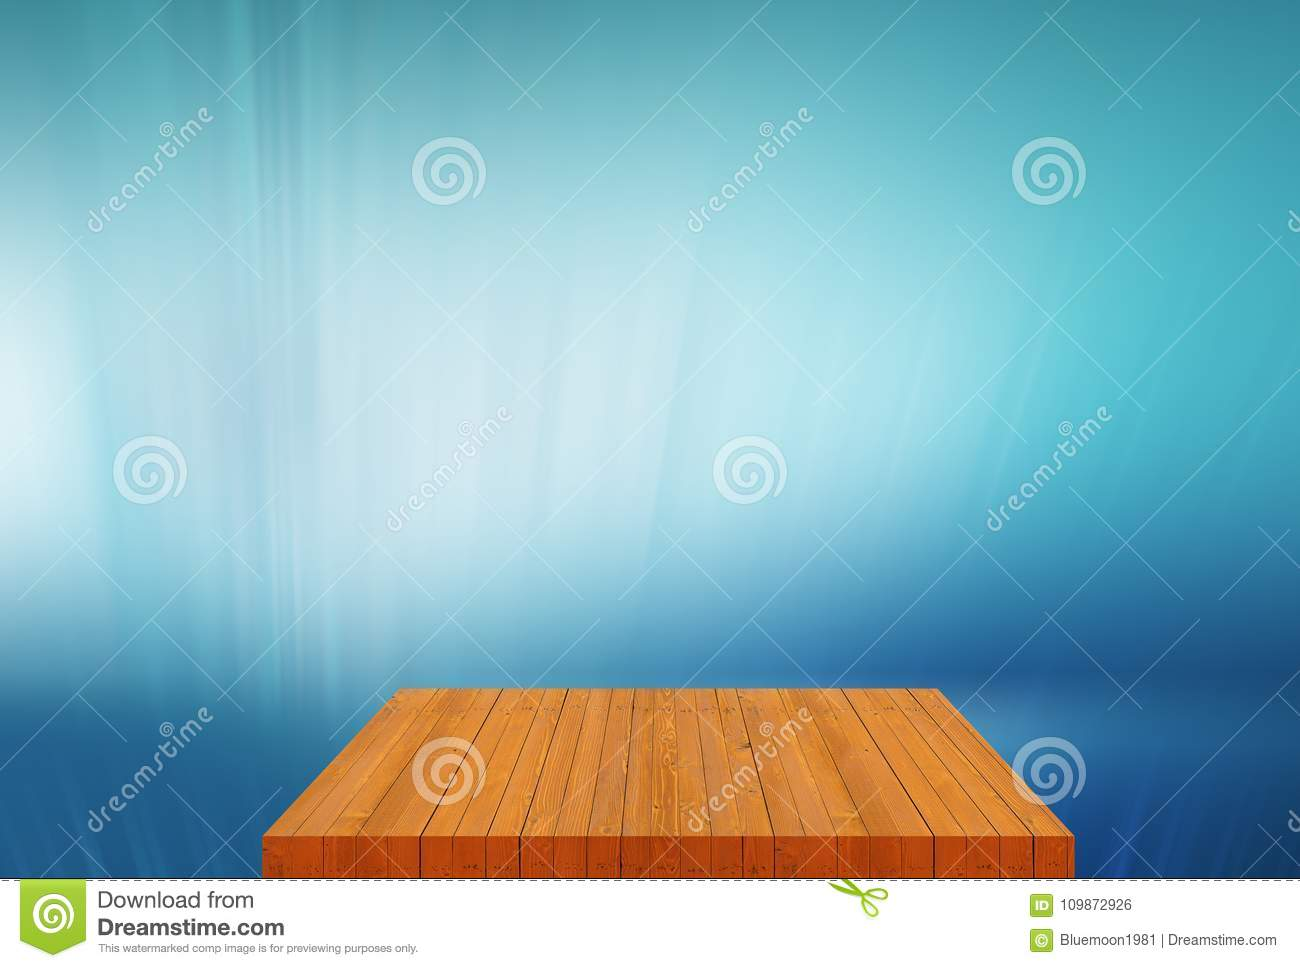 Wooden board empty table top with plain blue background concept